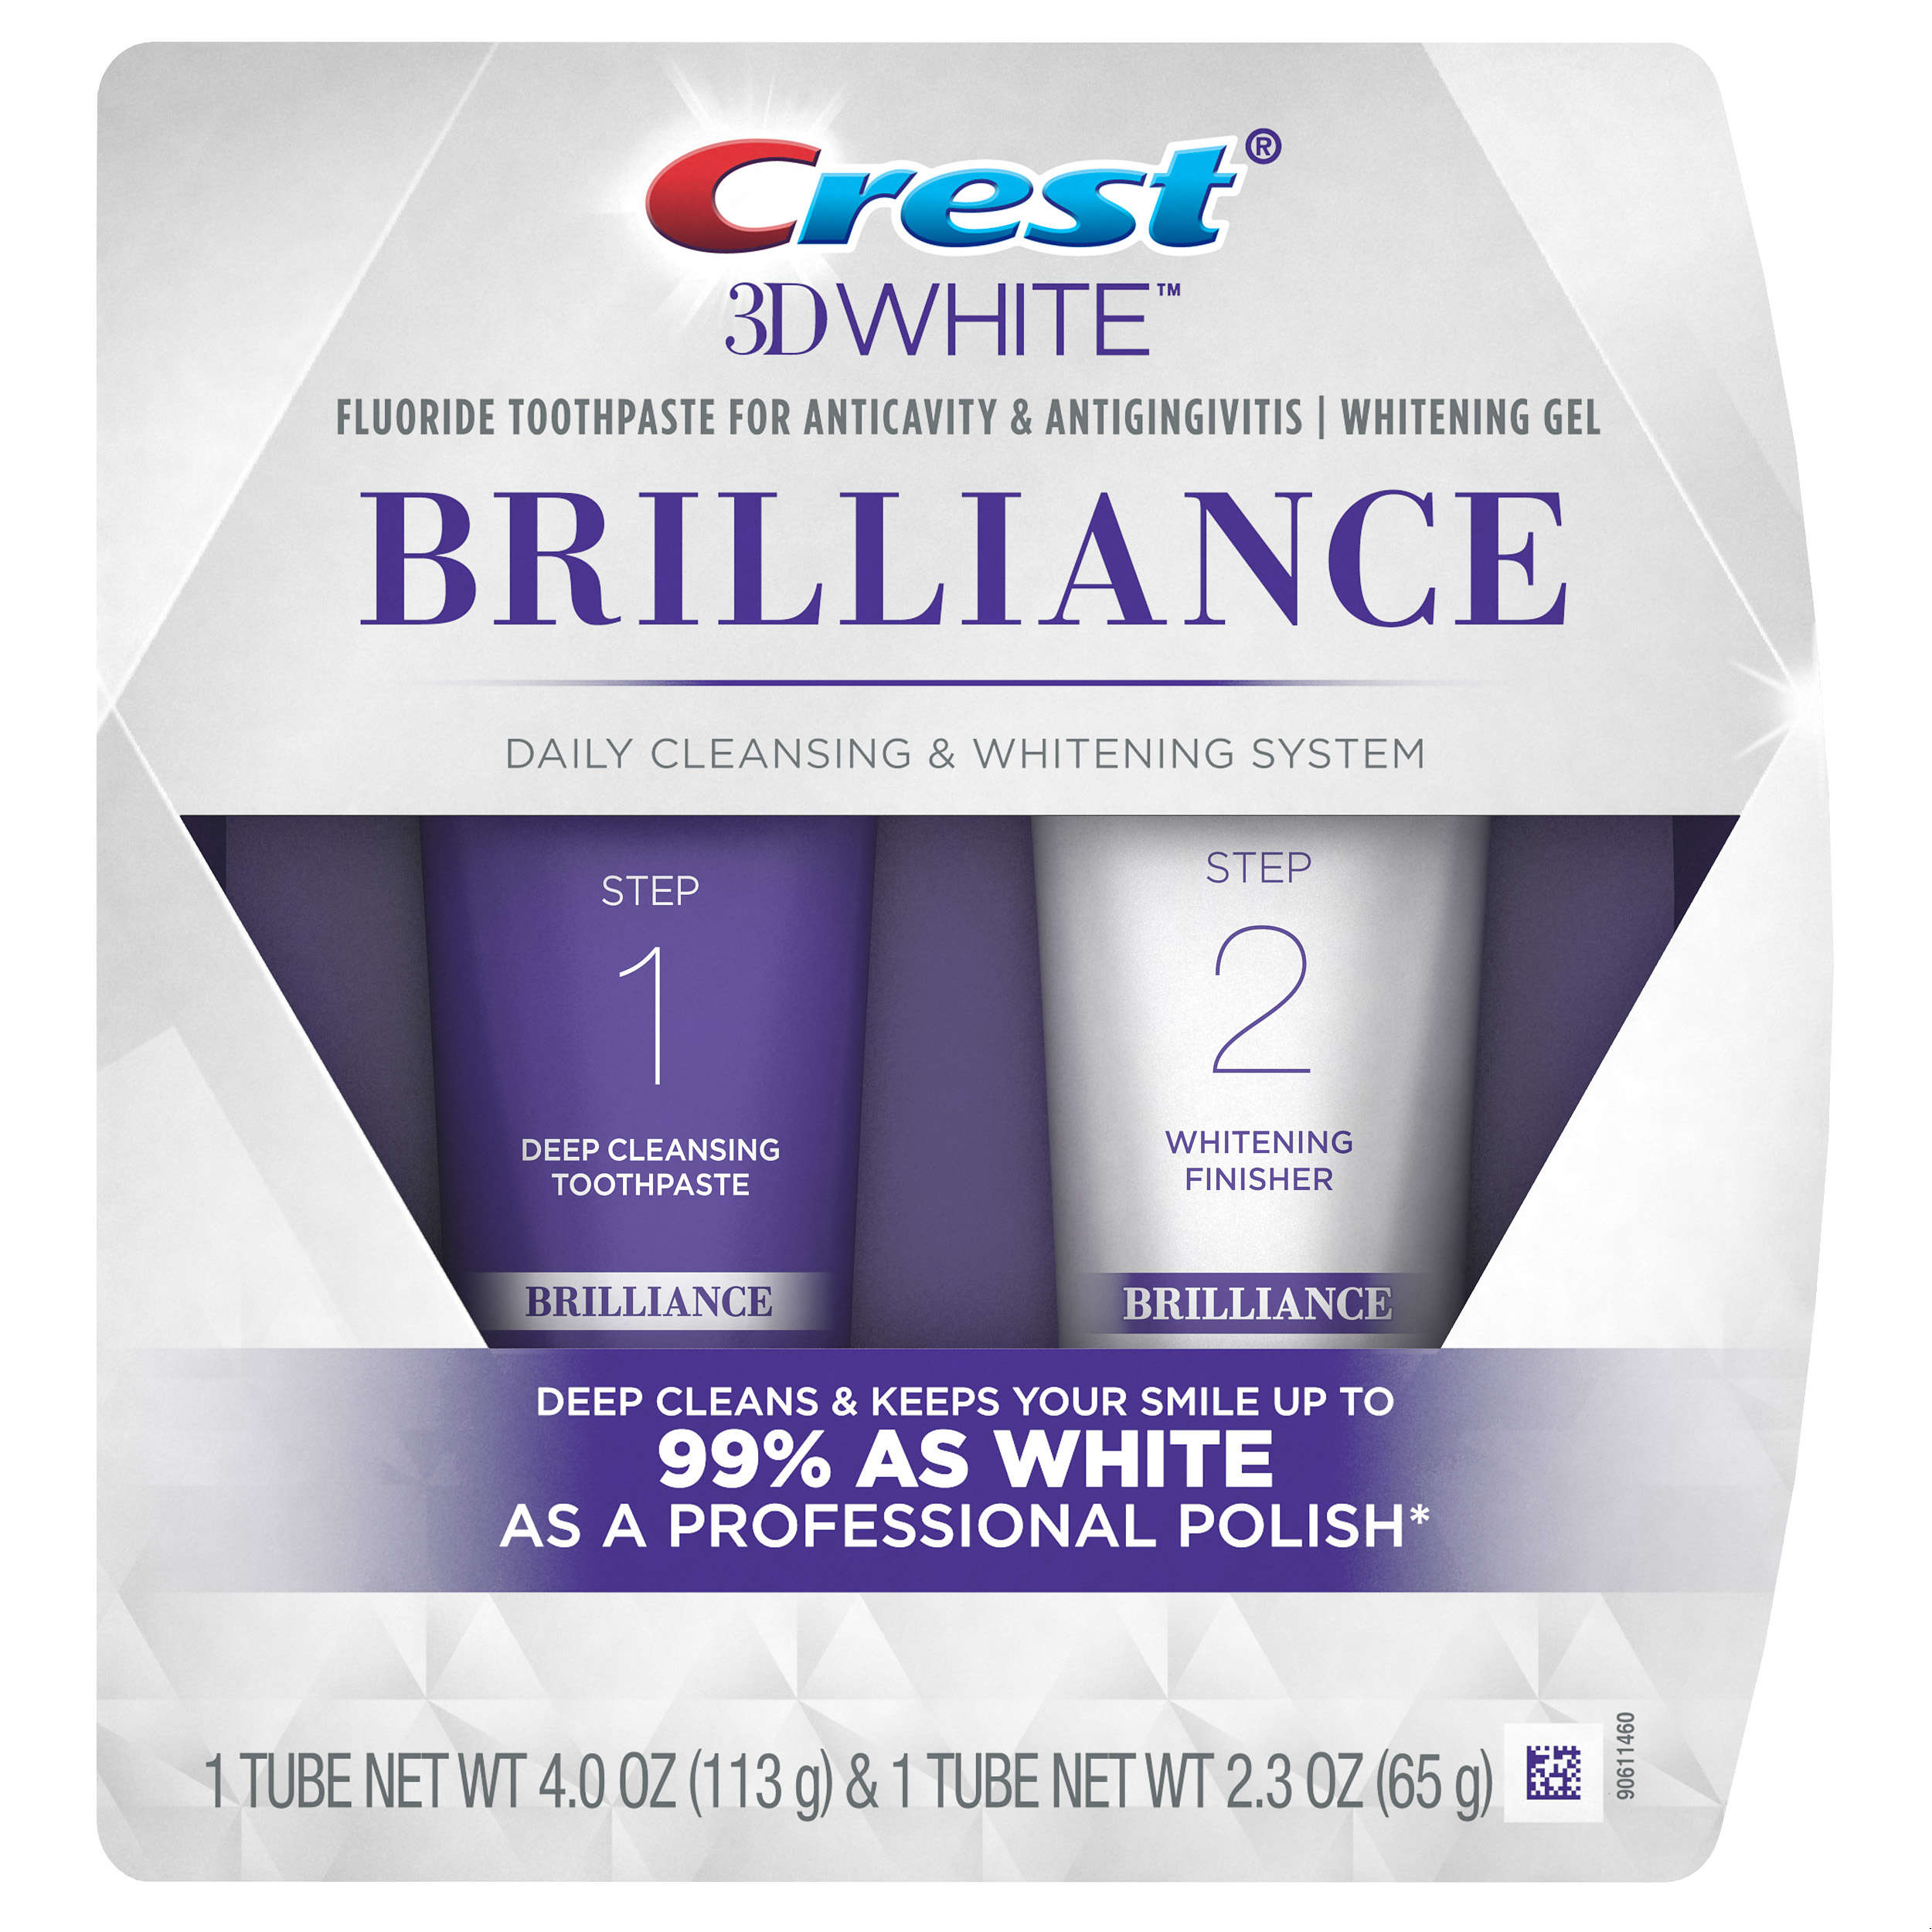 Crest 3D White Brilliance Daily Cleansing Toothpaste and Whitening Gel System (Choose Size)